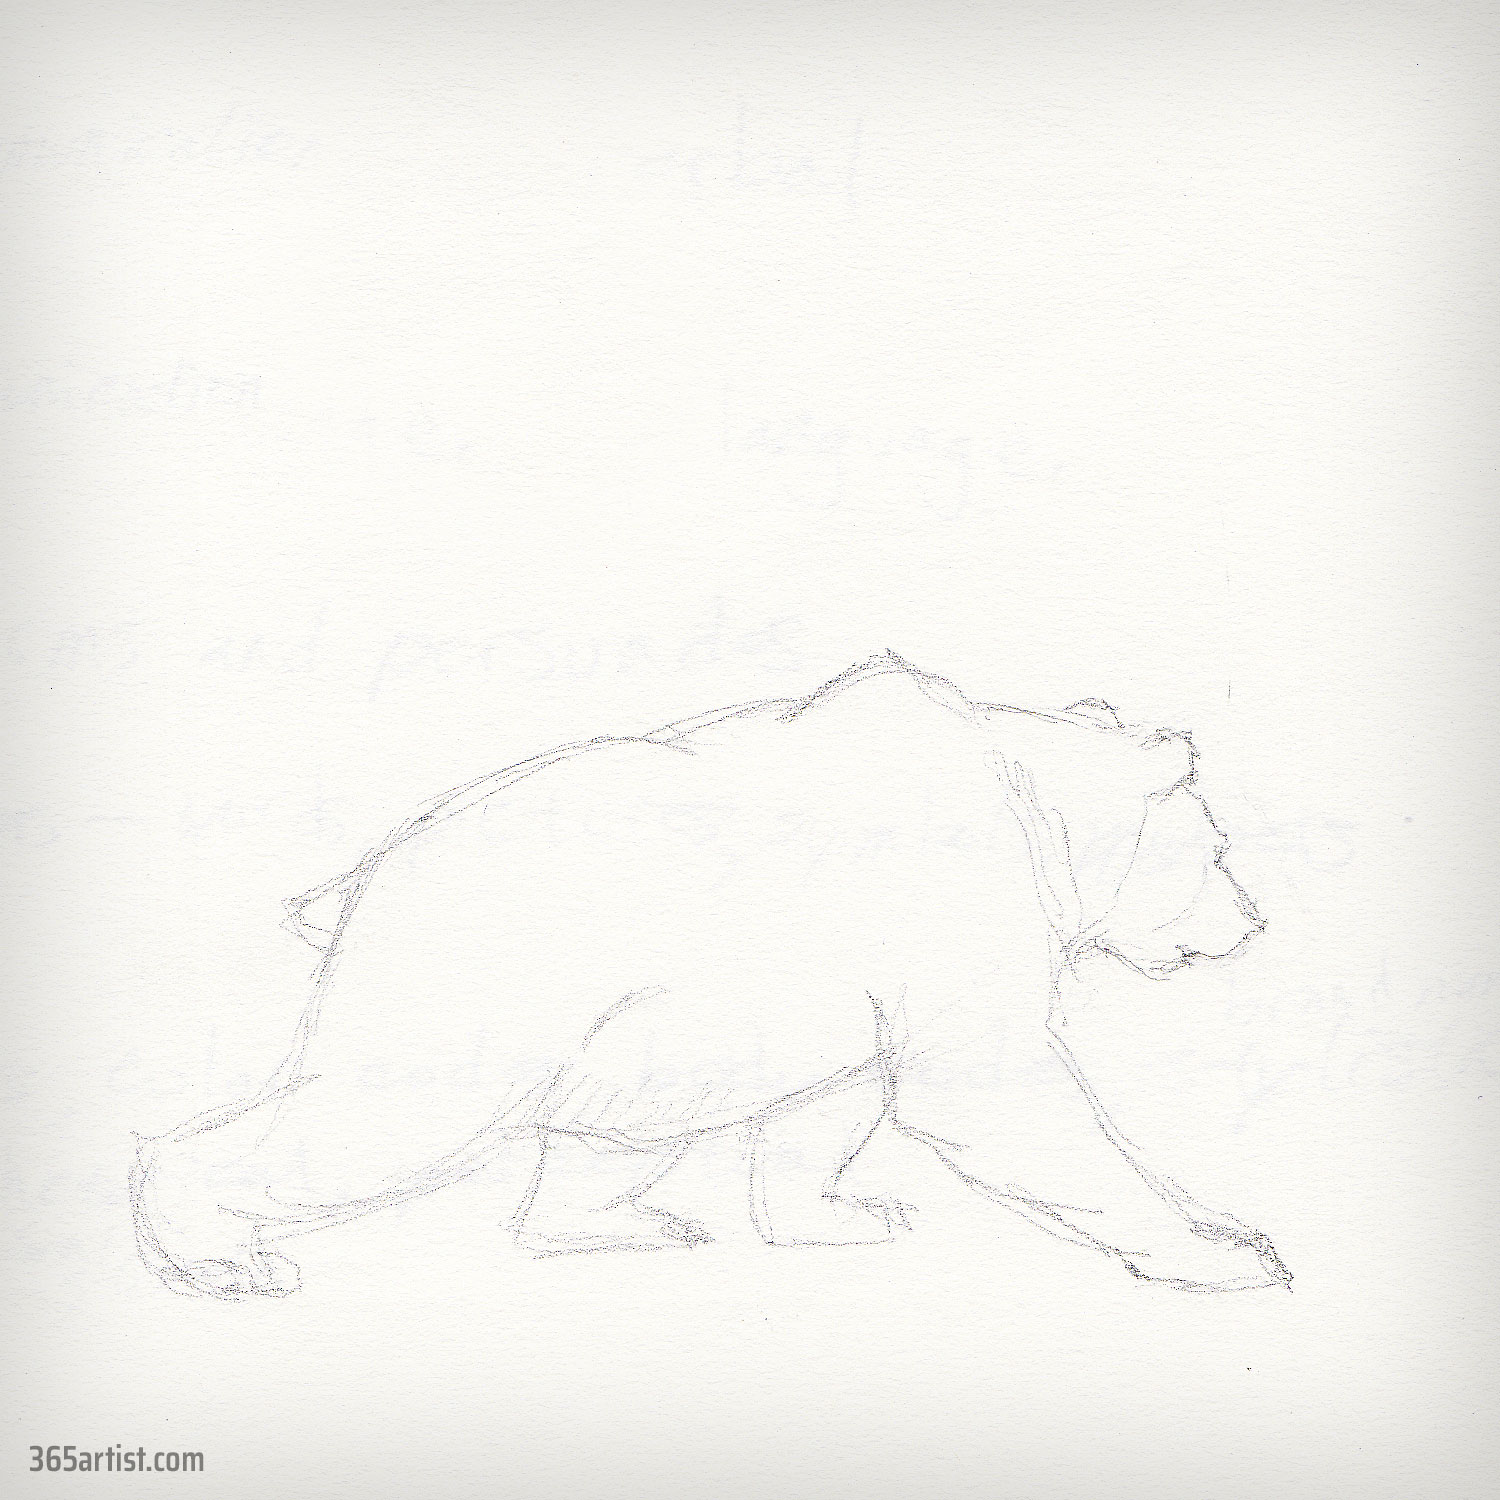 drawing of a bear